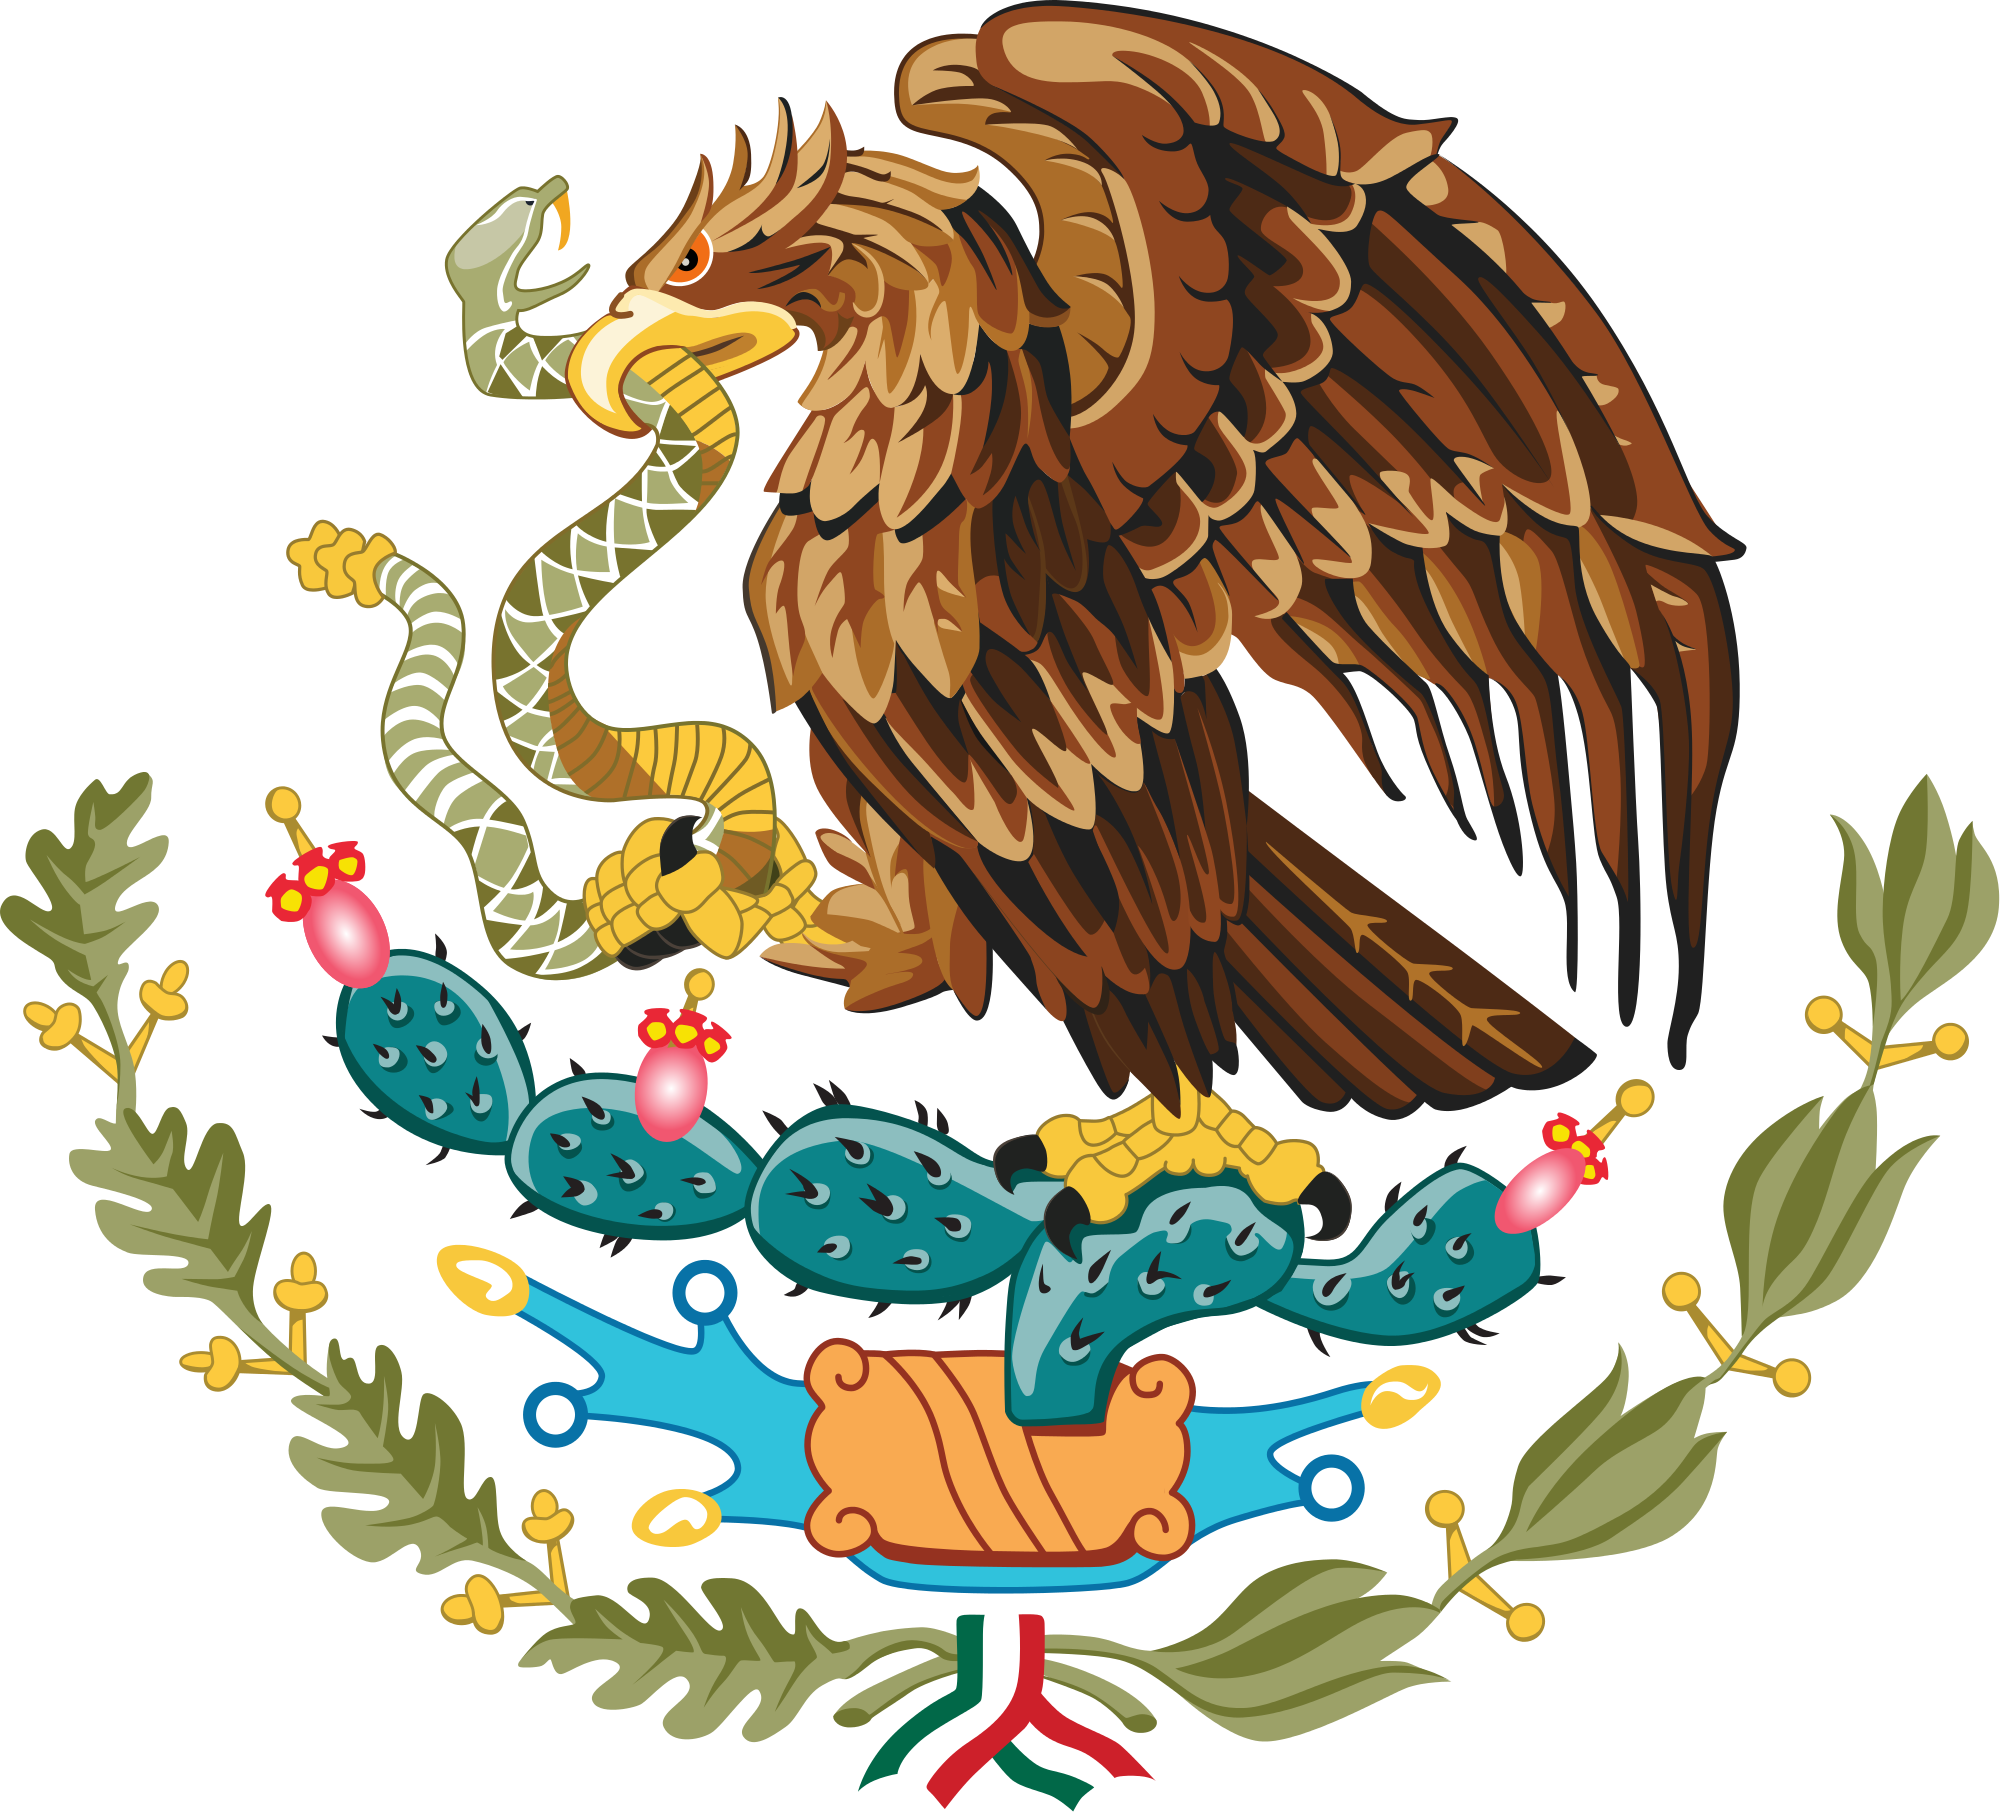 Coat of arms mexico. Snake clipart eagle